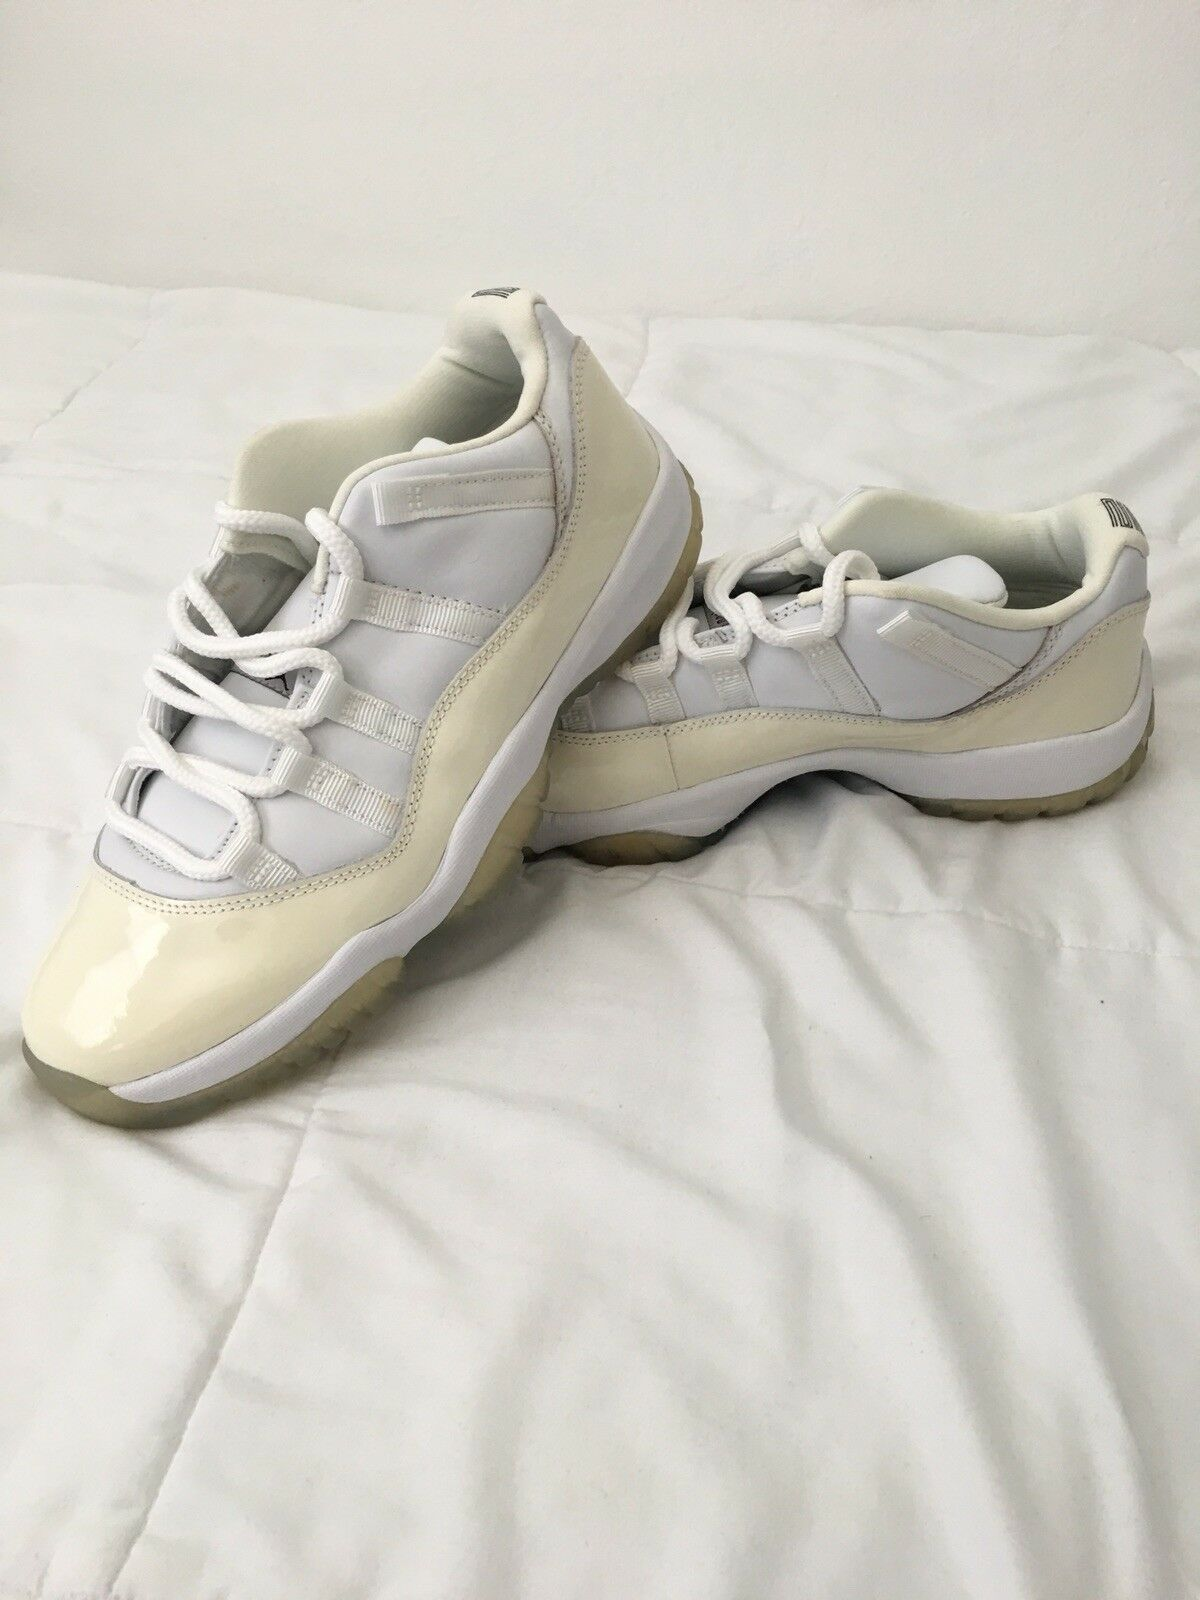 BRAND NEW DS 2001 AIR JORDAN 11 LOW LIGHT ZEN GREY SIZE 9.5